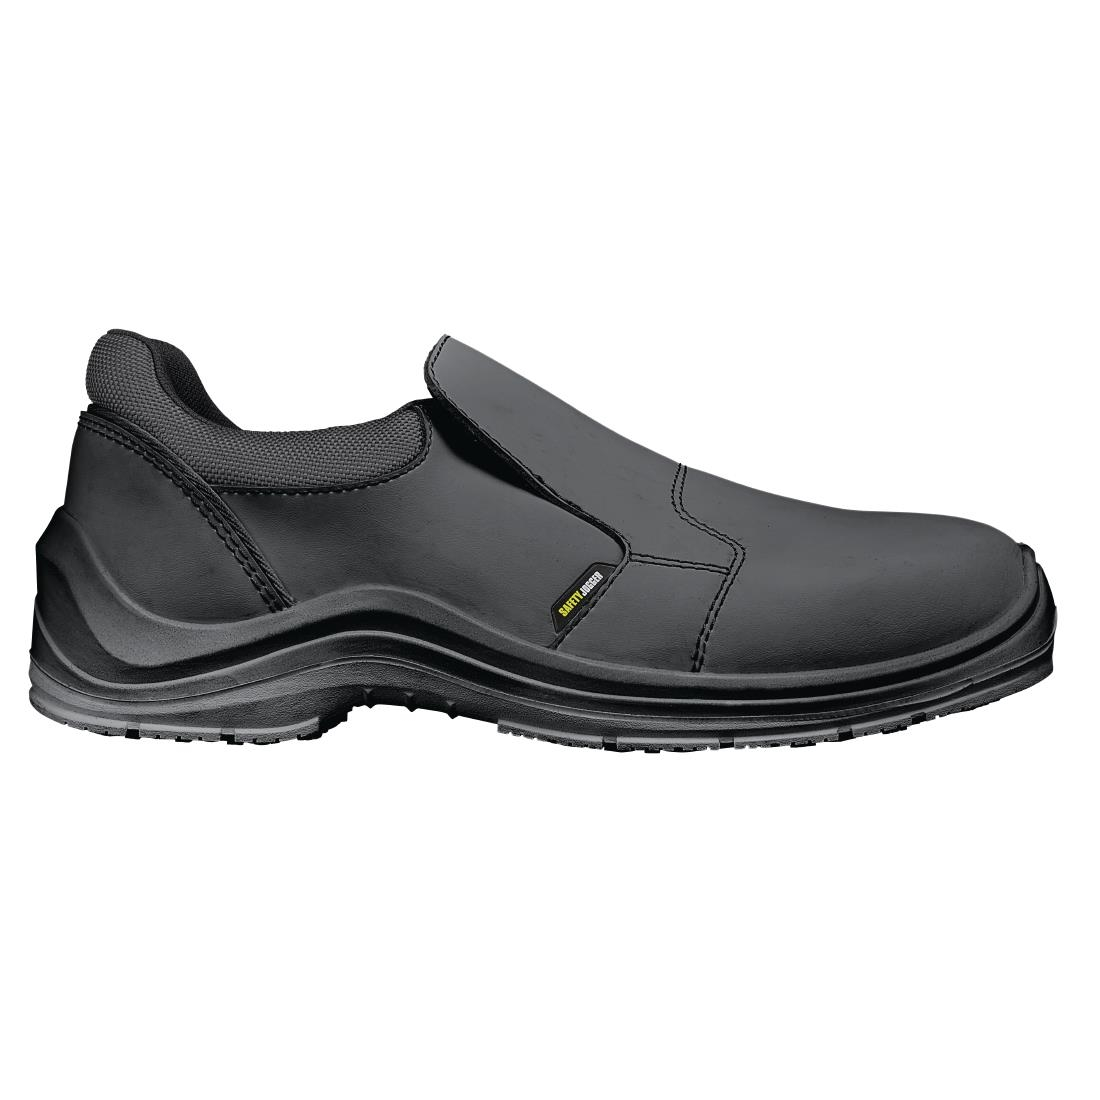 Shoes For Crews Dolce 81 Slip On Safety Shoe Size 43